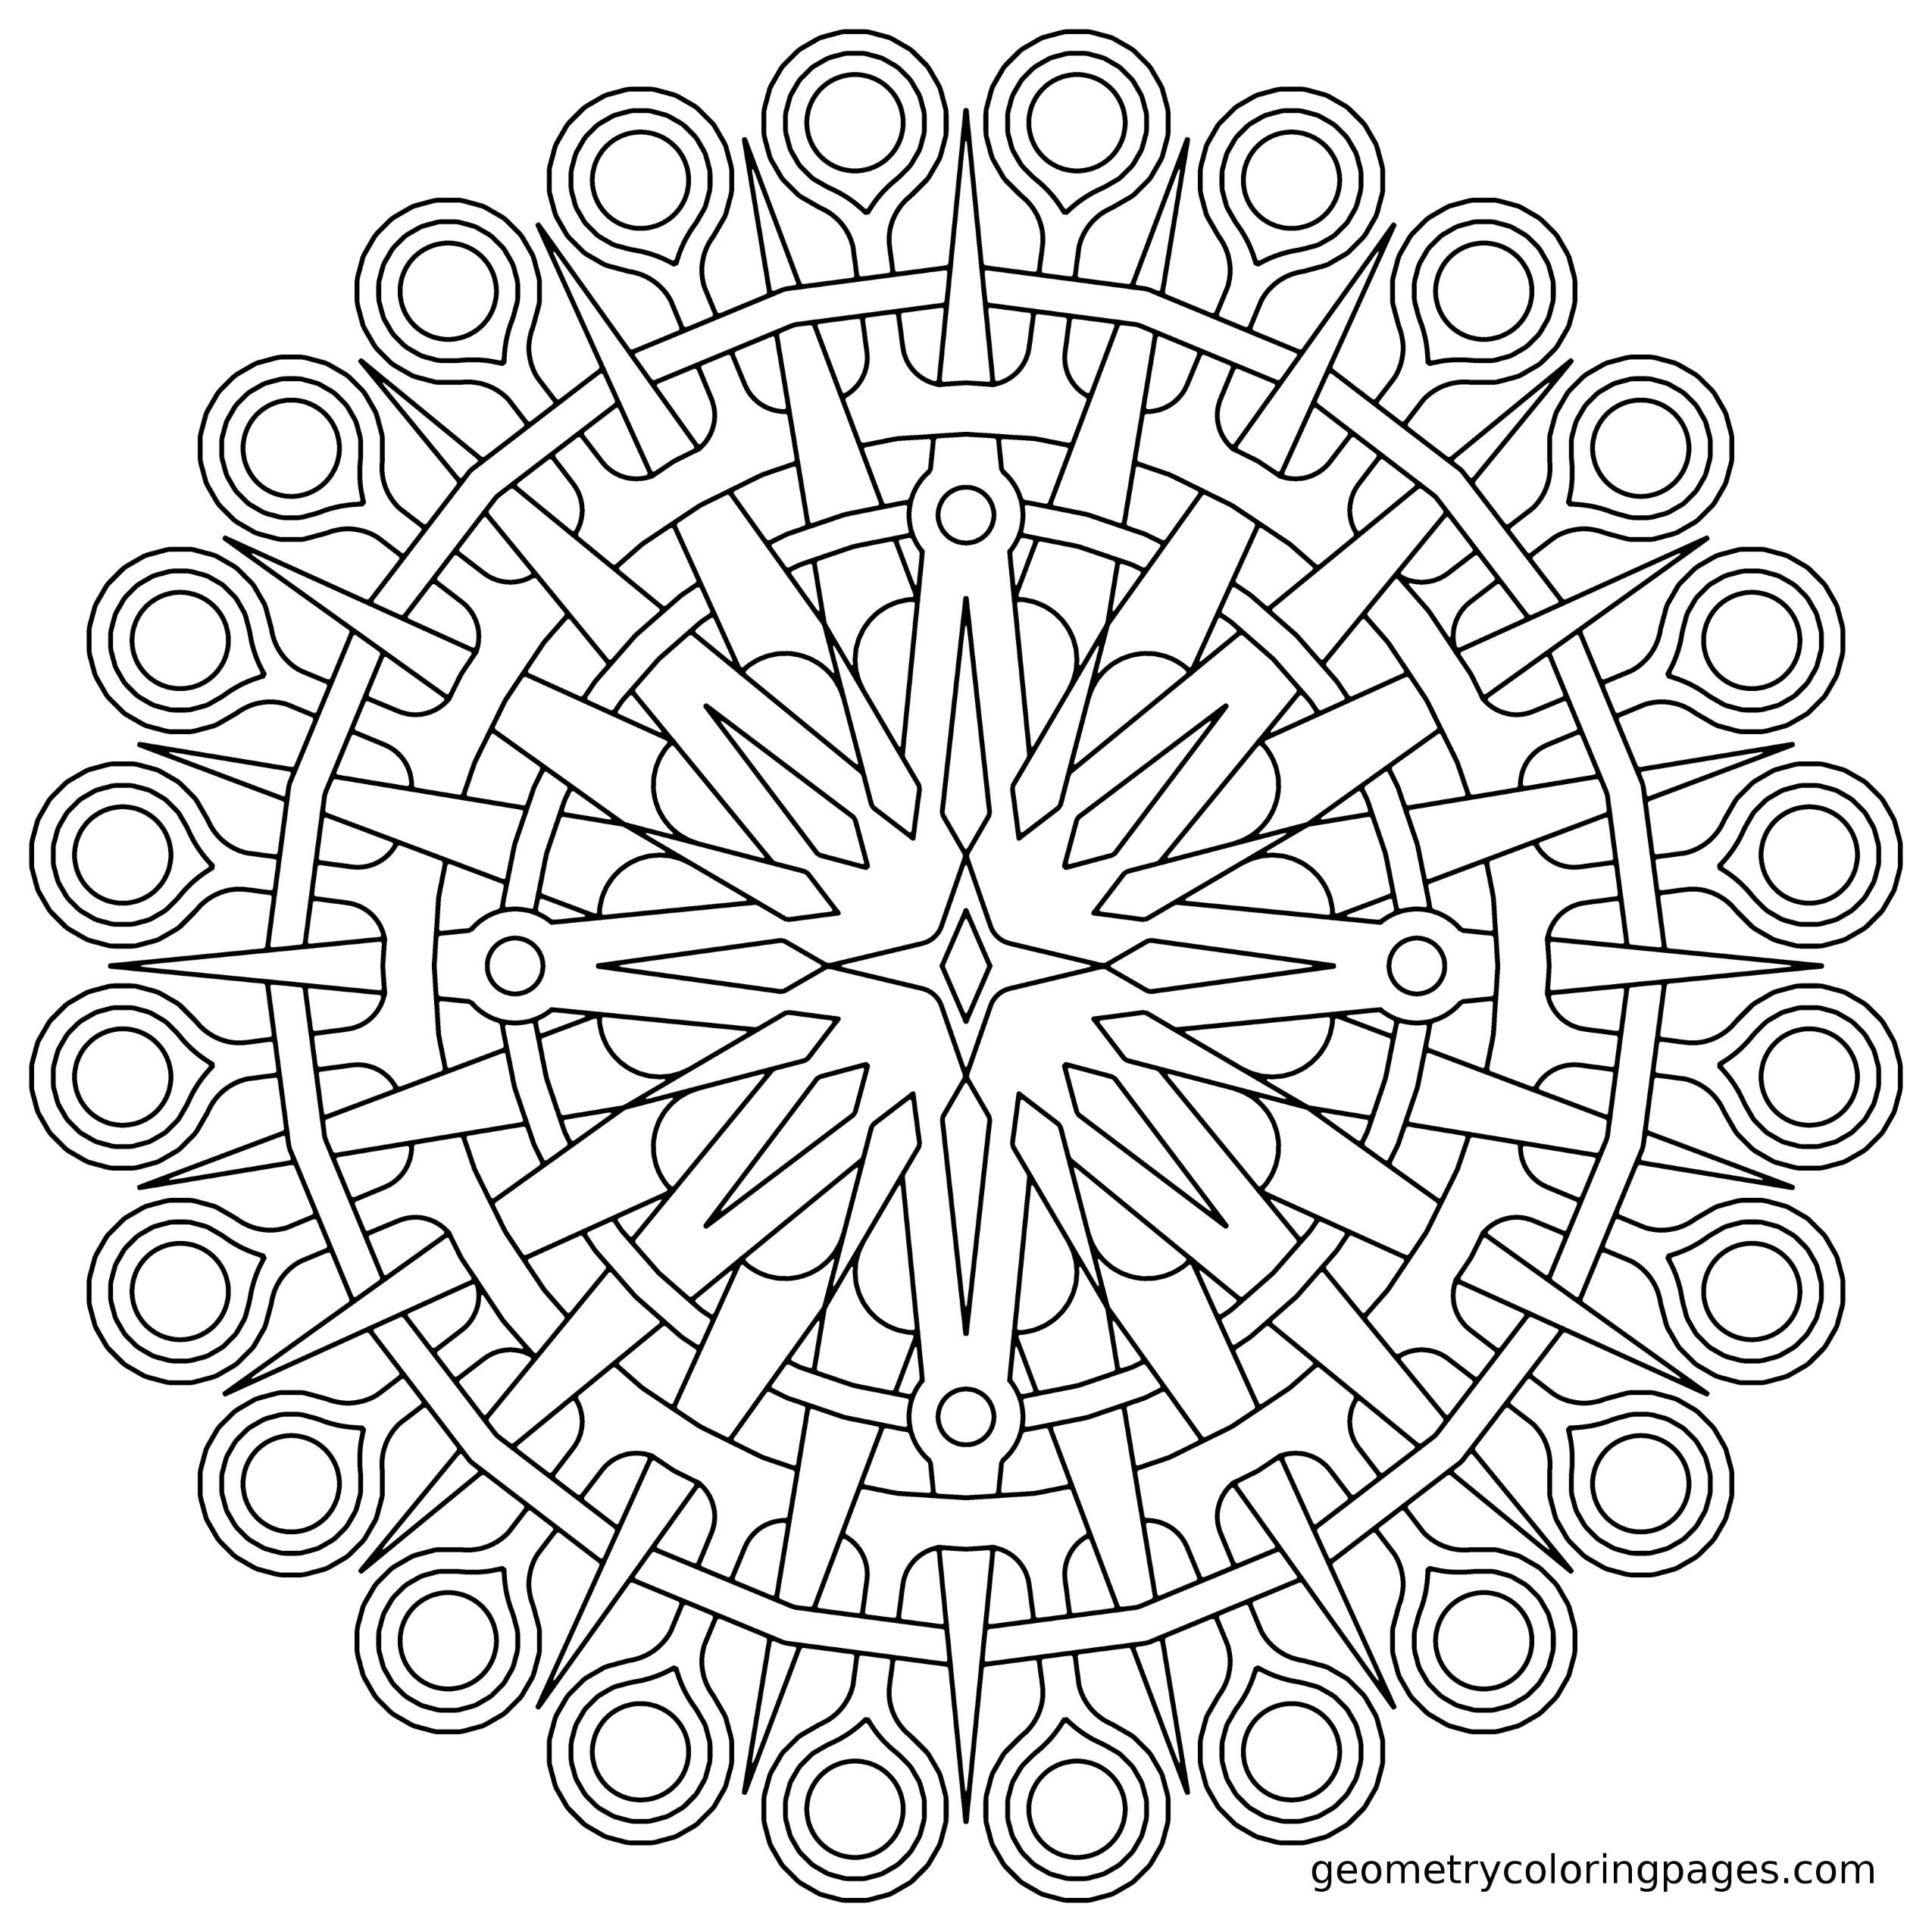 Geometry Coloring Pages